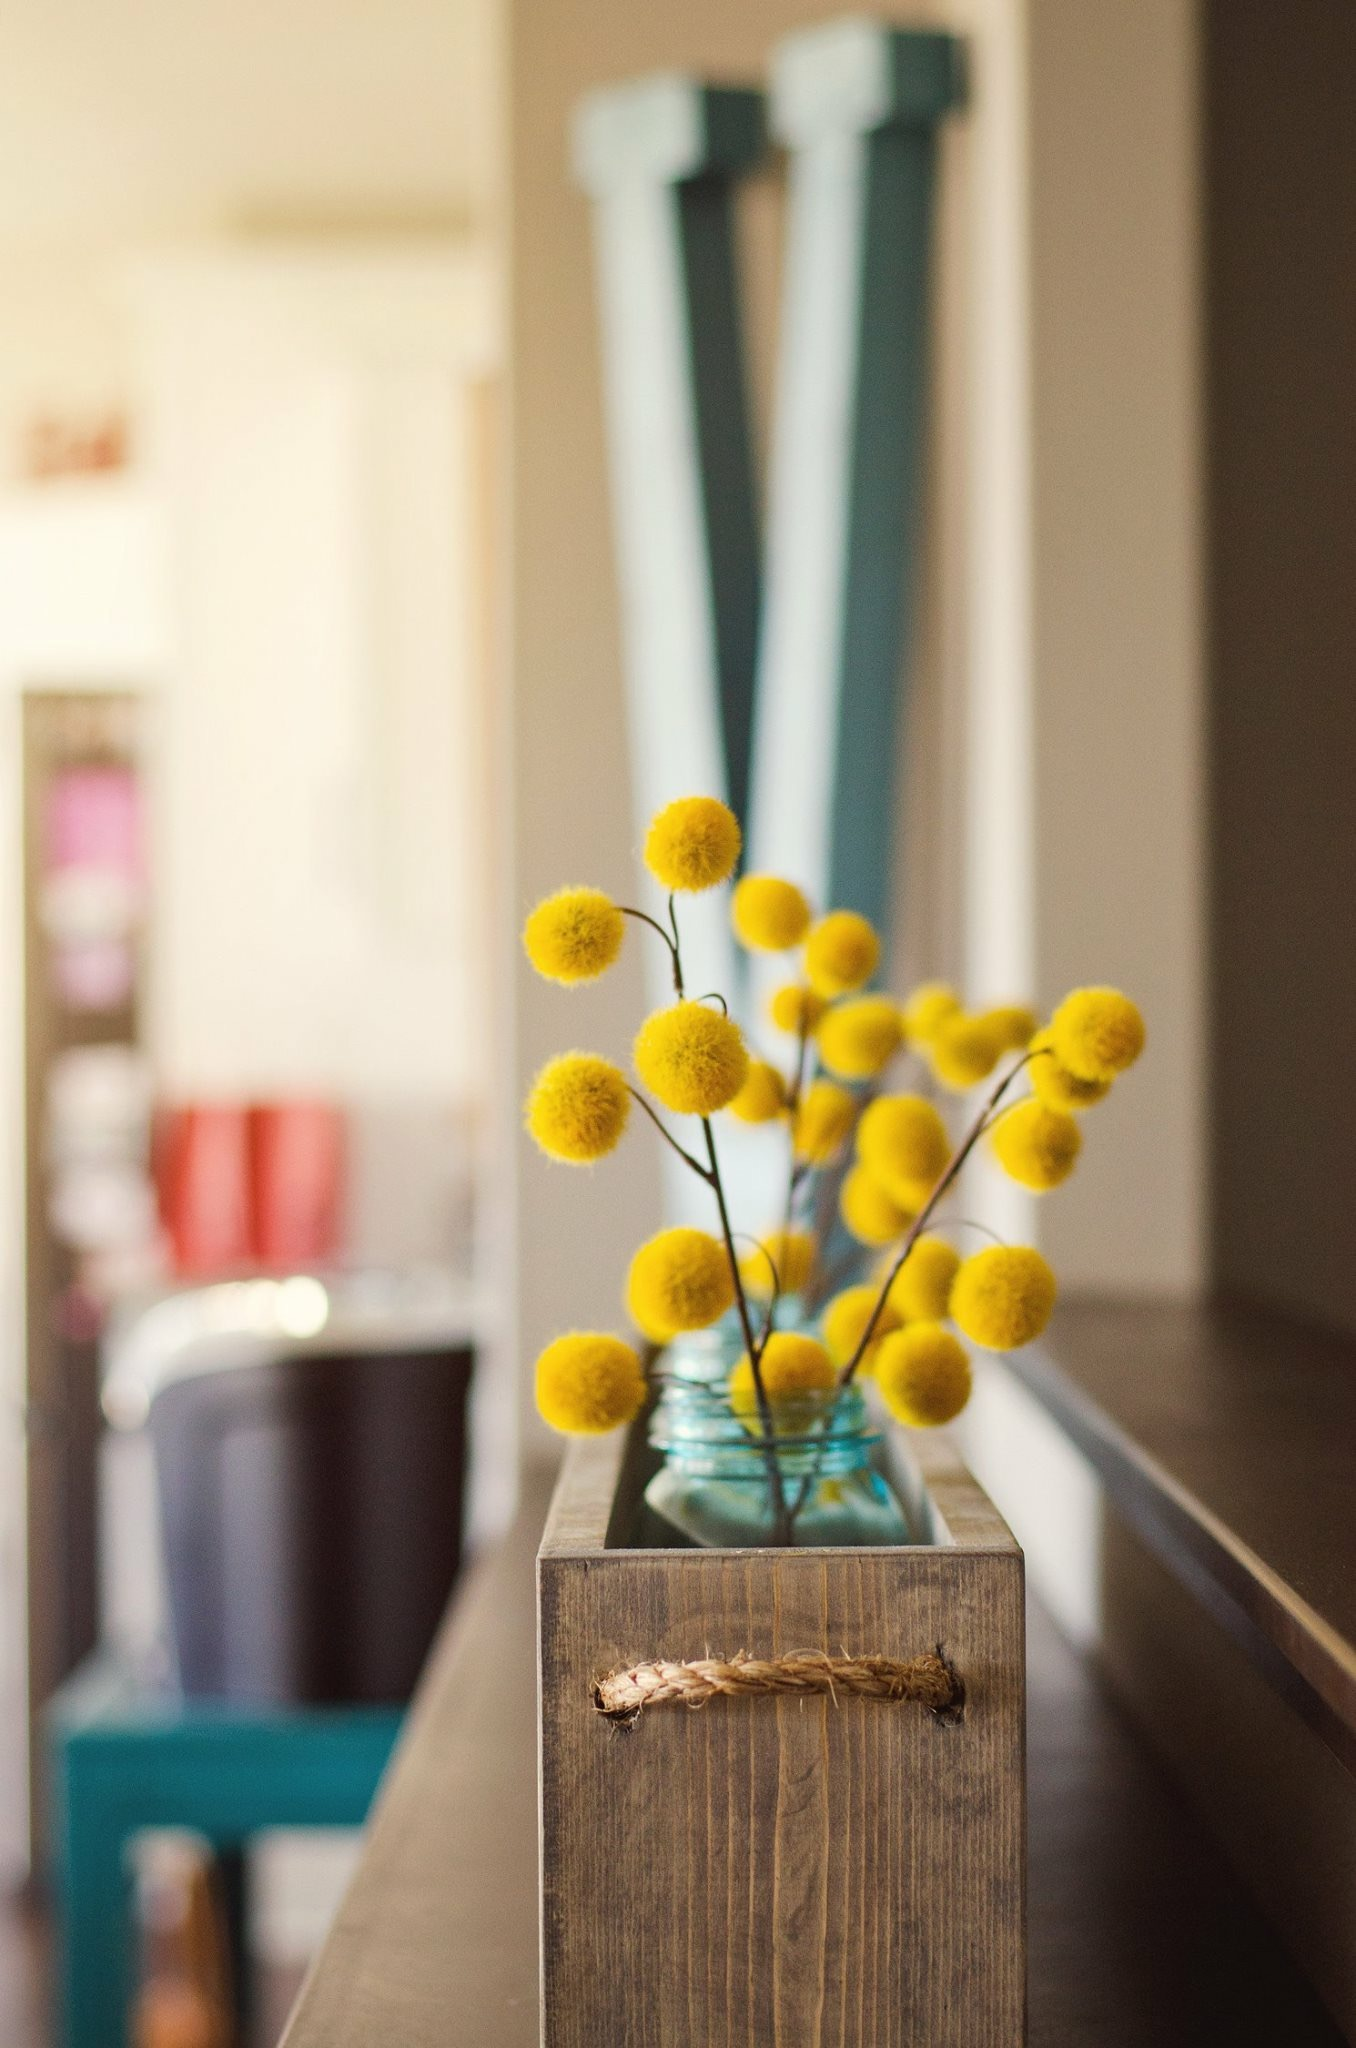 Yellow billy buttons in a wooden planter. RustopiaConsulting.com